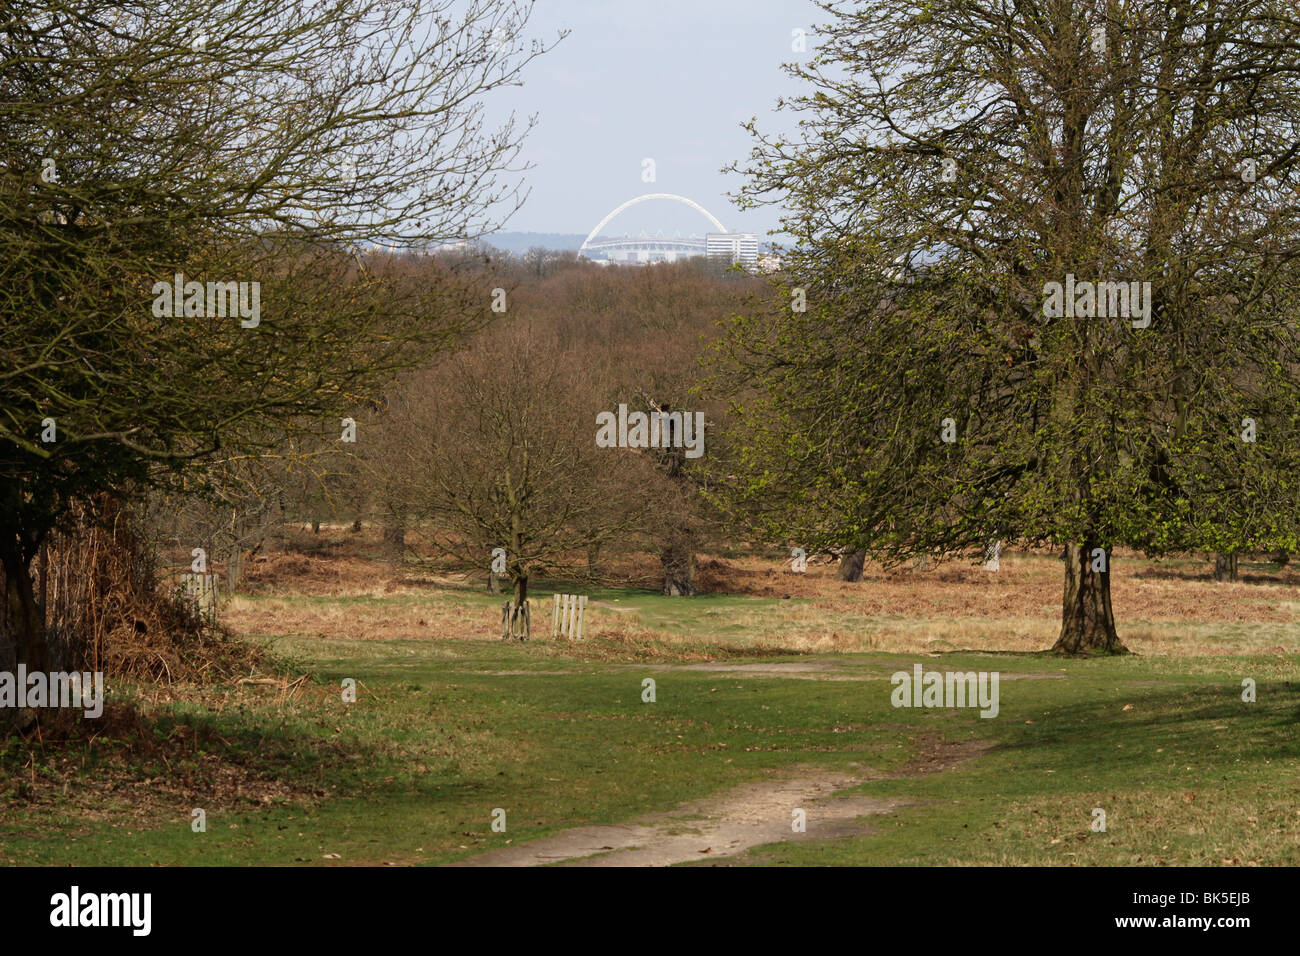 View of Wembley Stadium arch from Richmond Park in London, Surrey, England - Stock Image